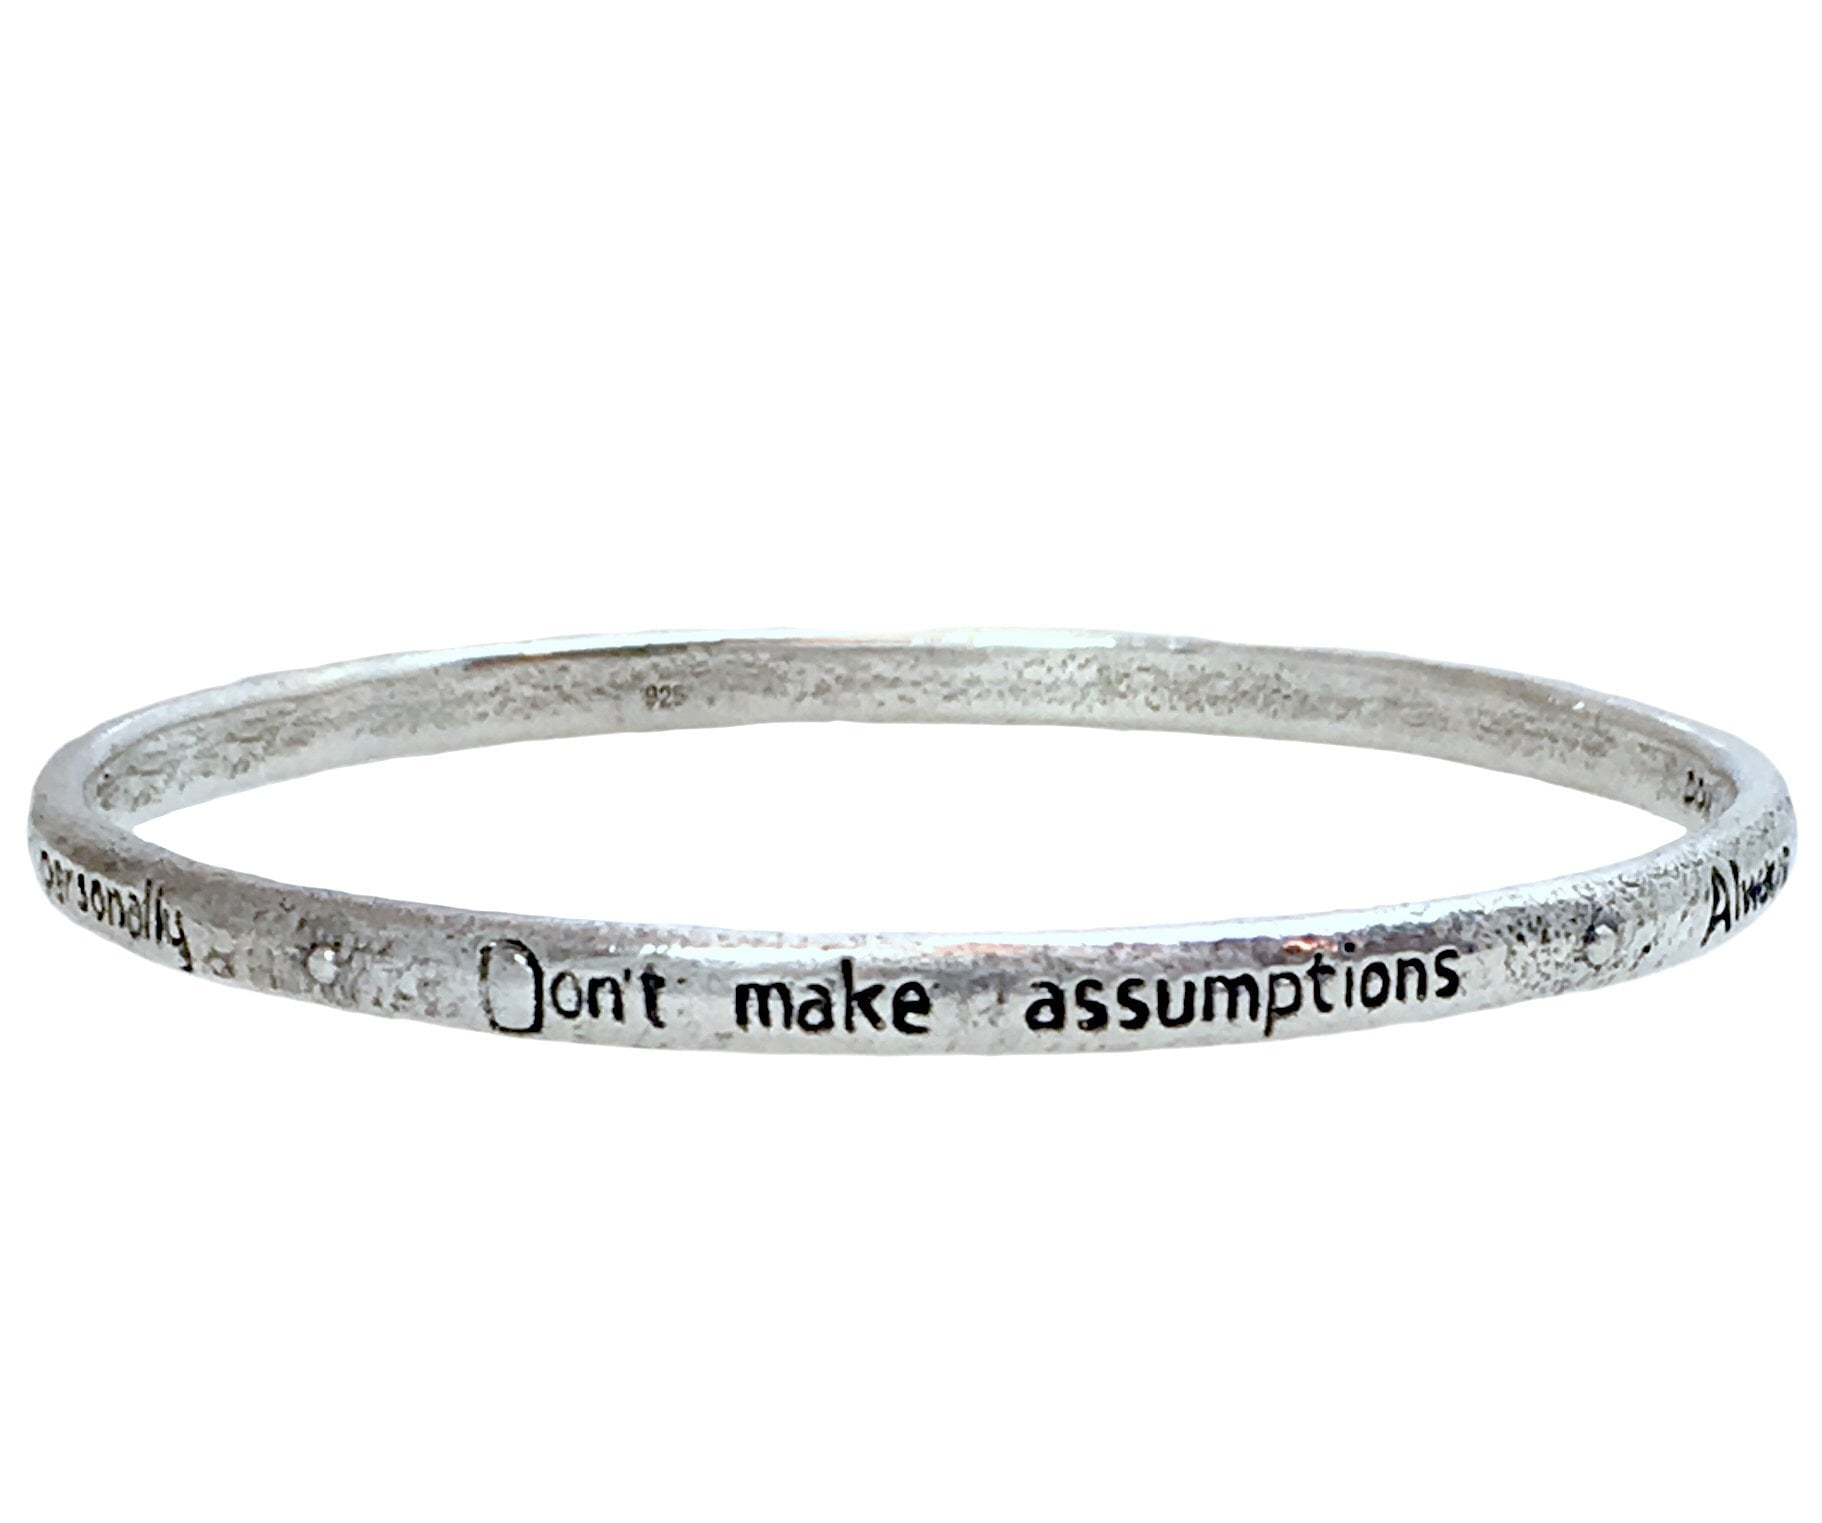 The Four Agreements Single Bangle in 925 Sterling Silver | Handcrafted | Inspirational Jewelry | Jewelry Evolution8 | Made in Bali